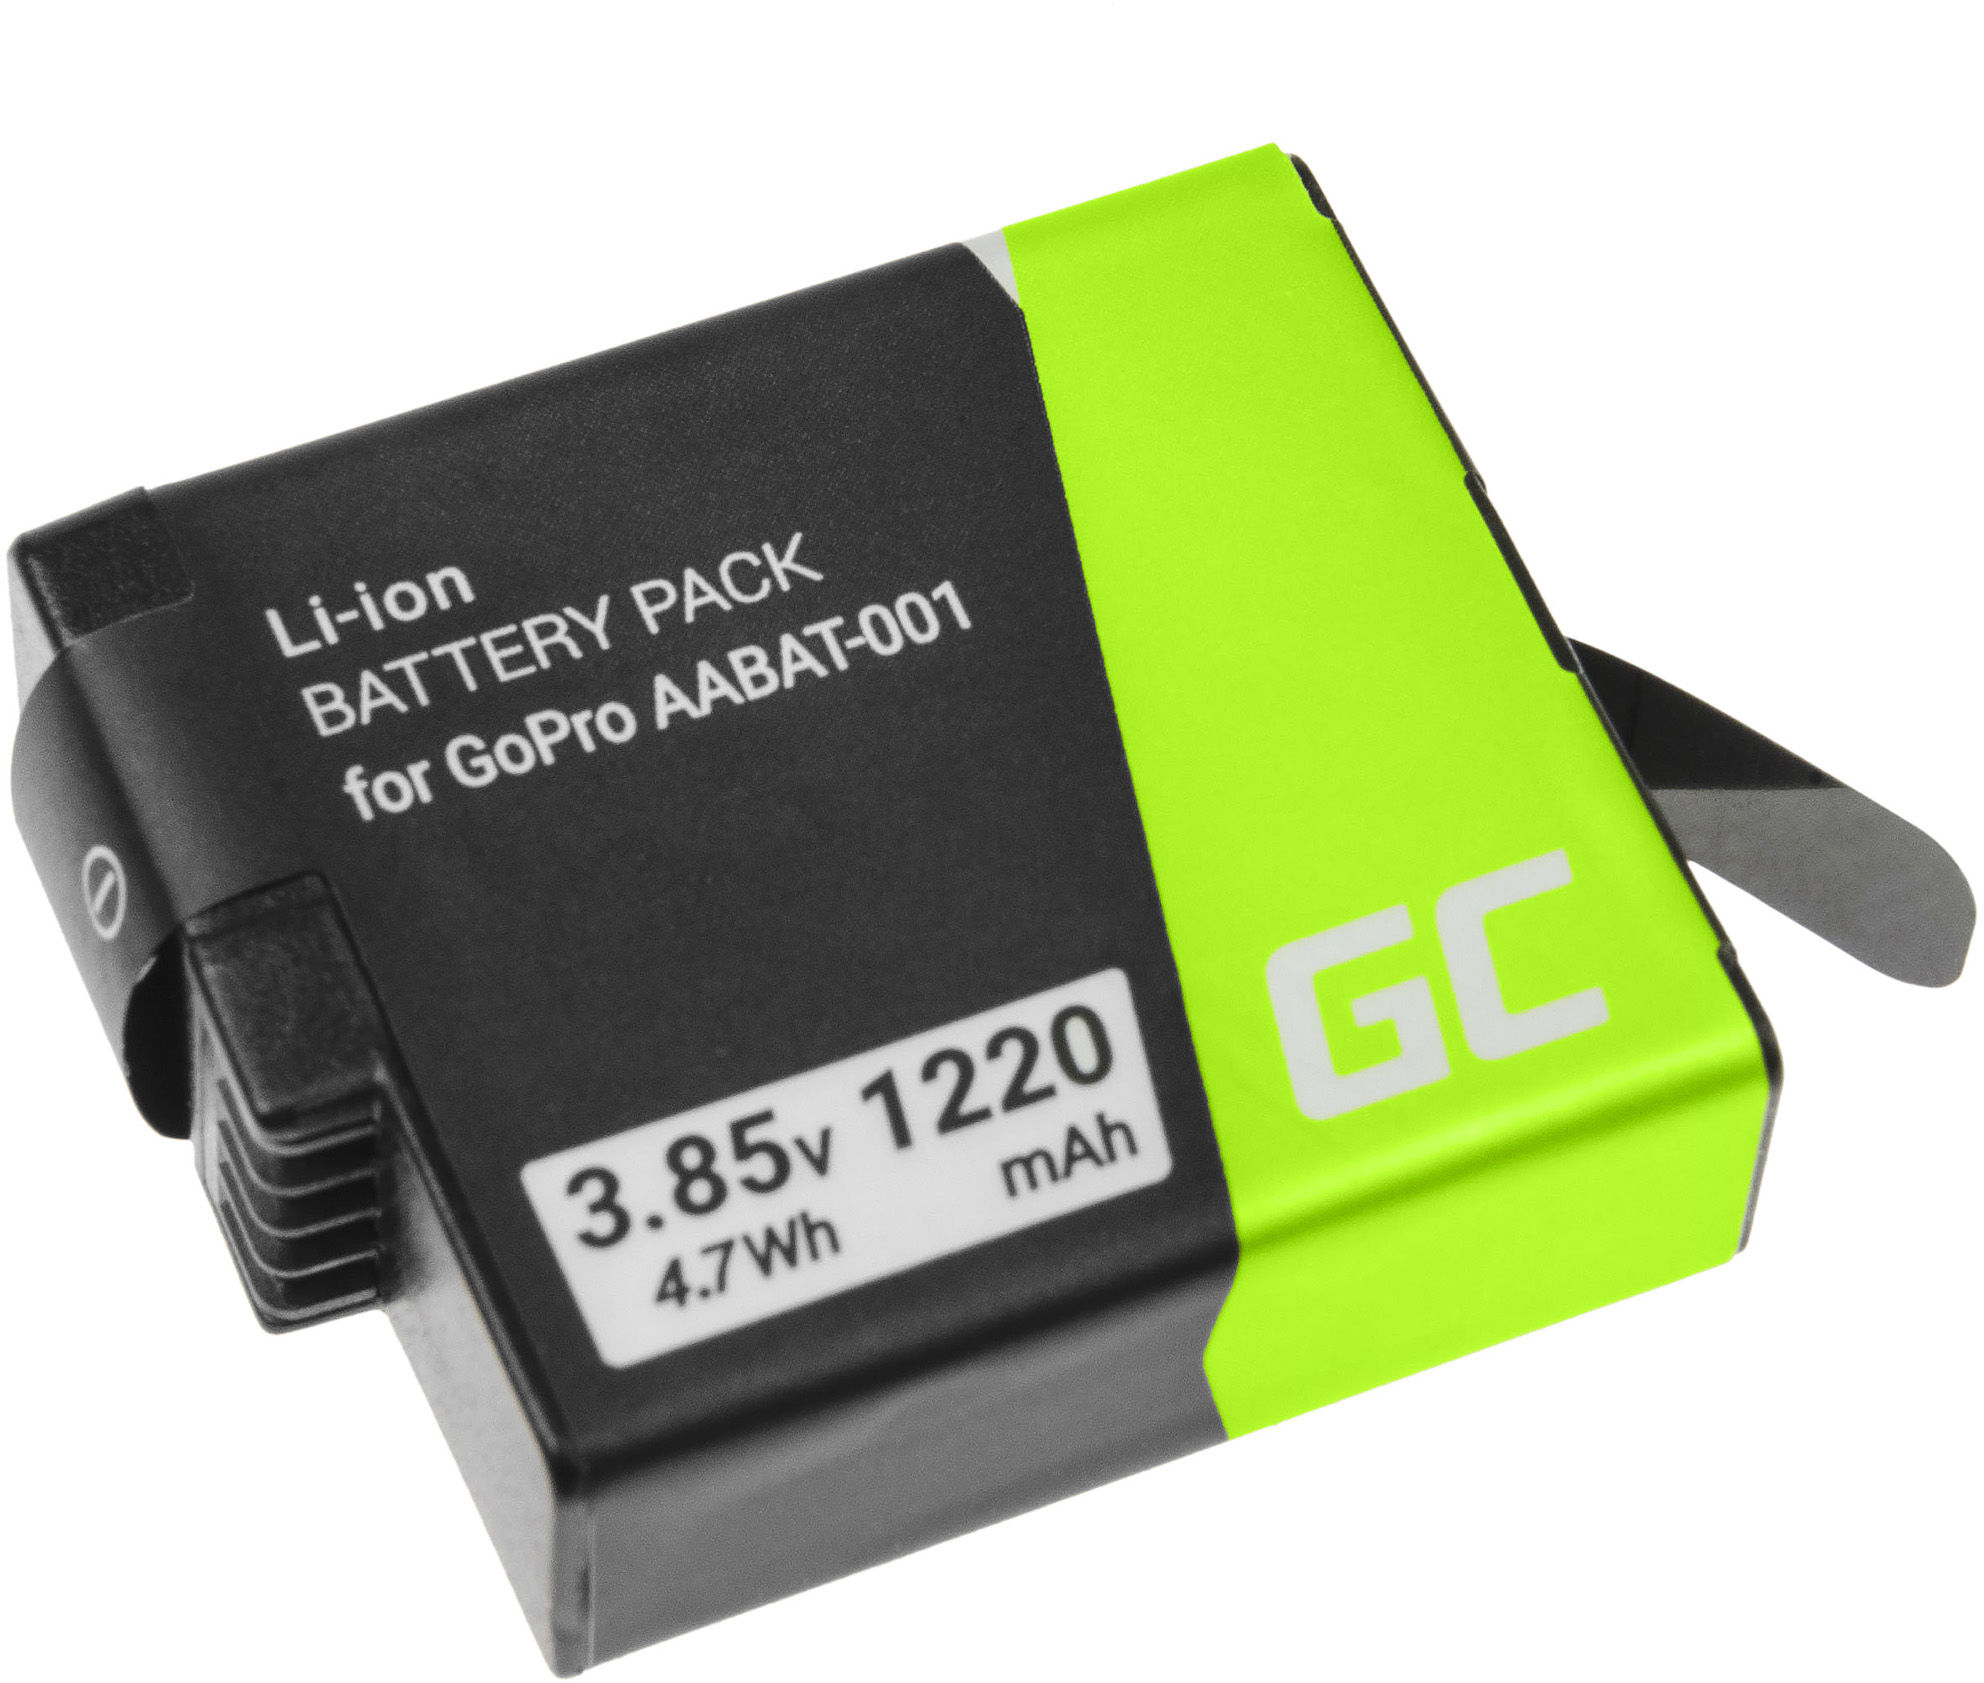 Akumulator Bateria Green Cell AABAT-001 AHDBT-501 AJBAT-001 do GoPro Hero 5 6 7 8 Black Silver White 3.85V 1220mAh